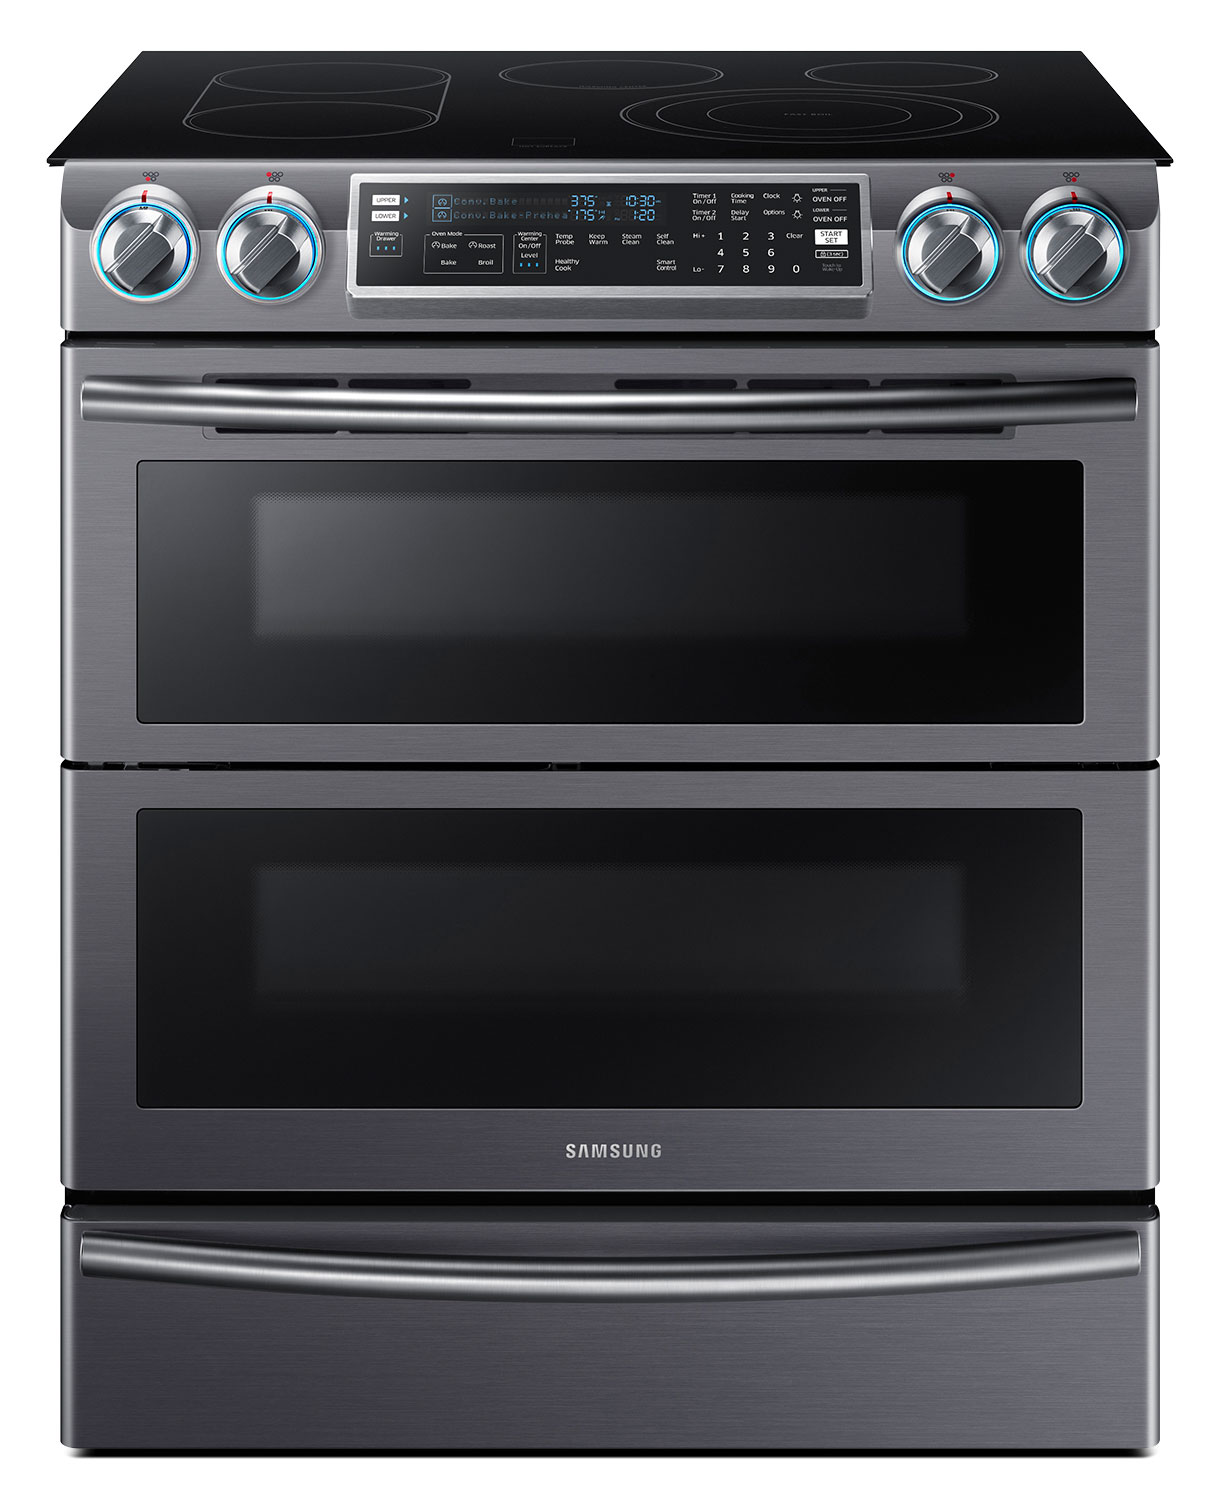 Samsung Black Stainless Steel Slide-In Electric Convection Range (5.8. Cu. Ft.) - NE58K9850WG/AC